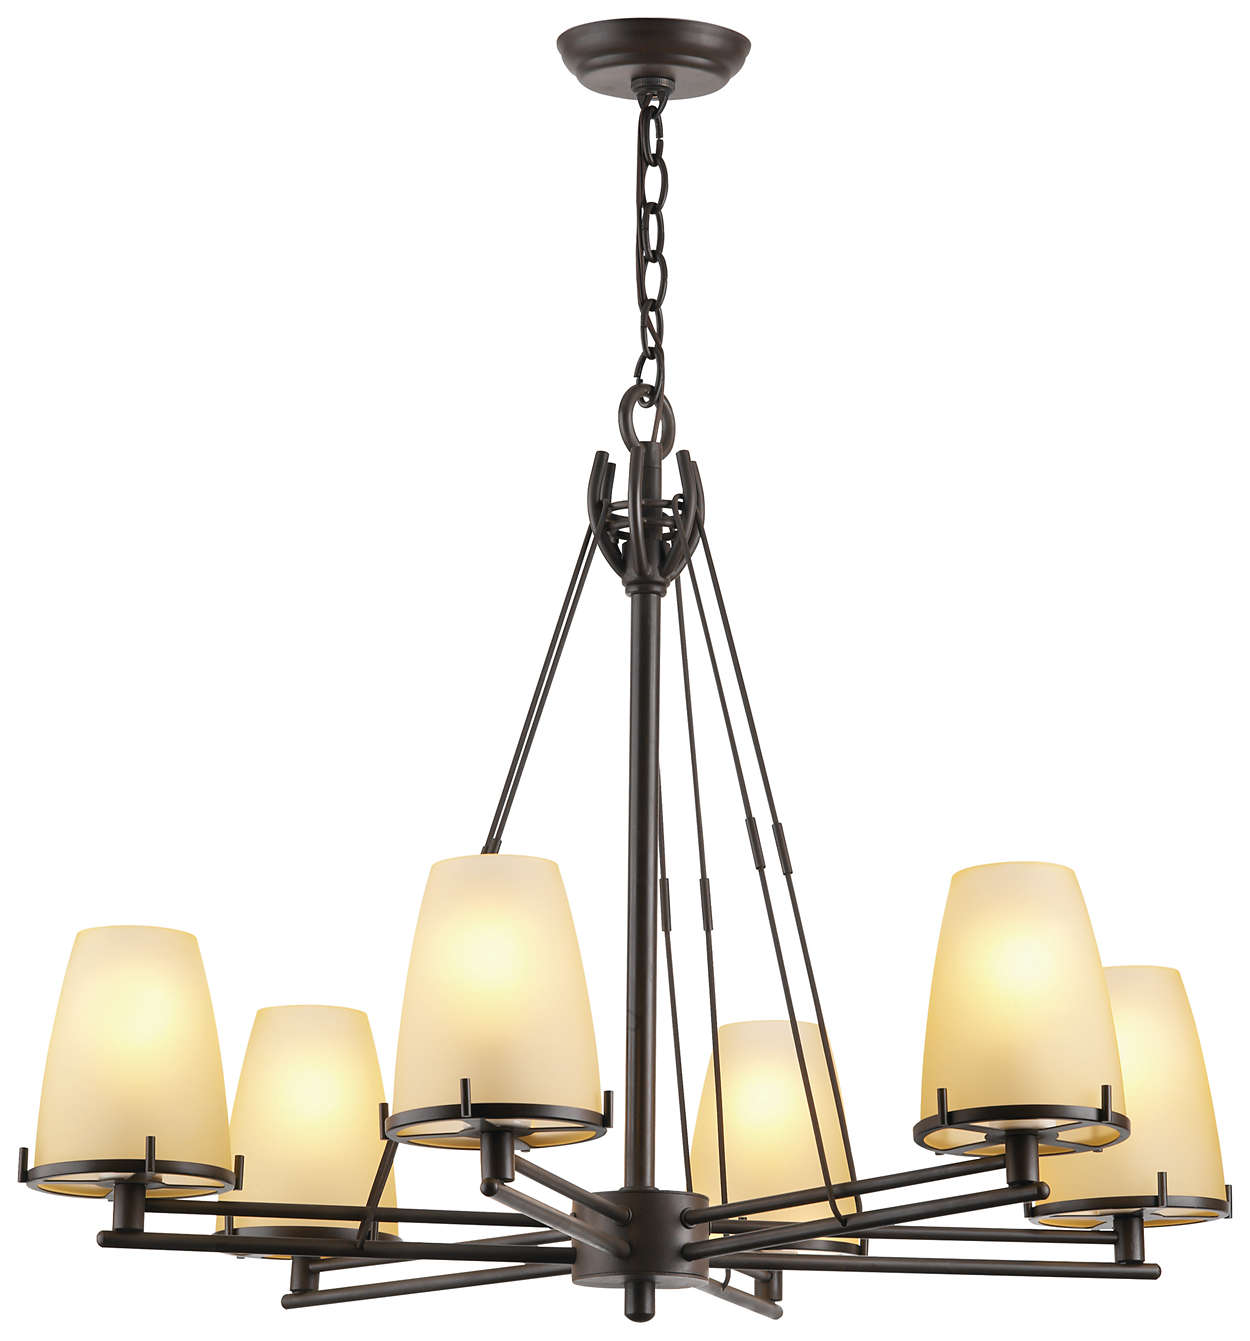 Kellar's Forge 6-light Chandelier, Deep Bronze